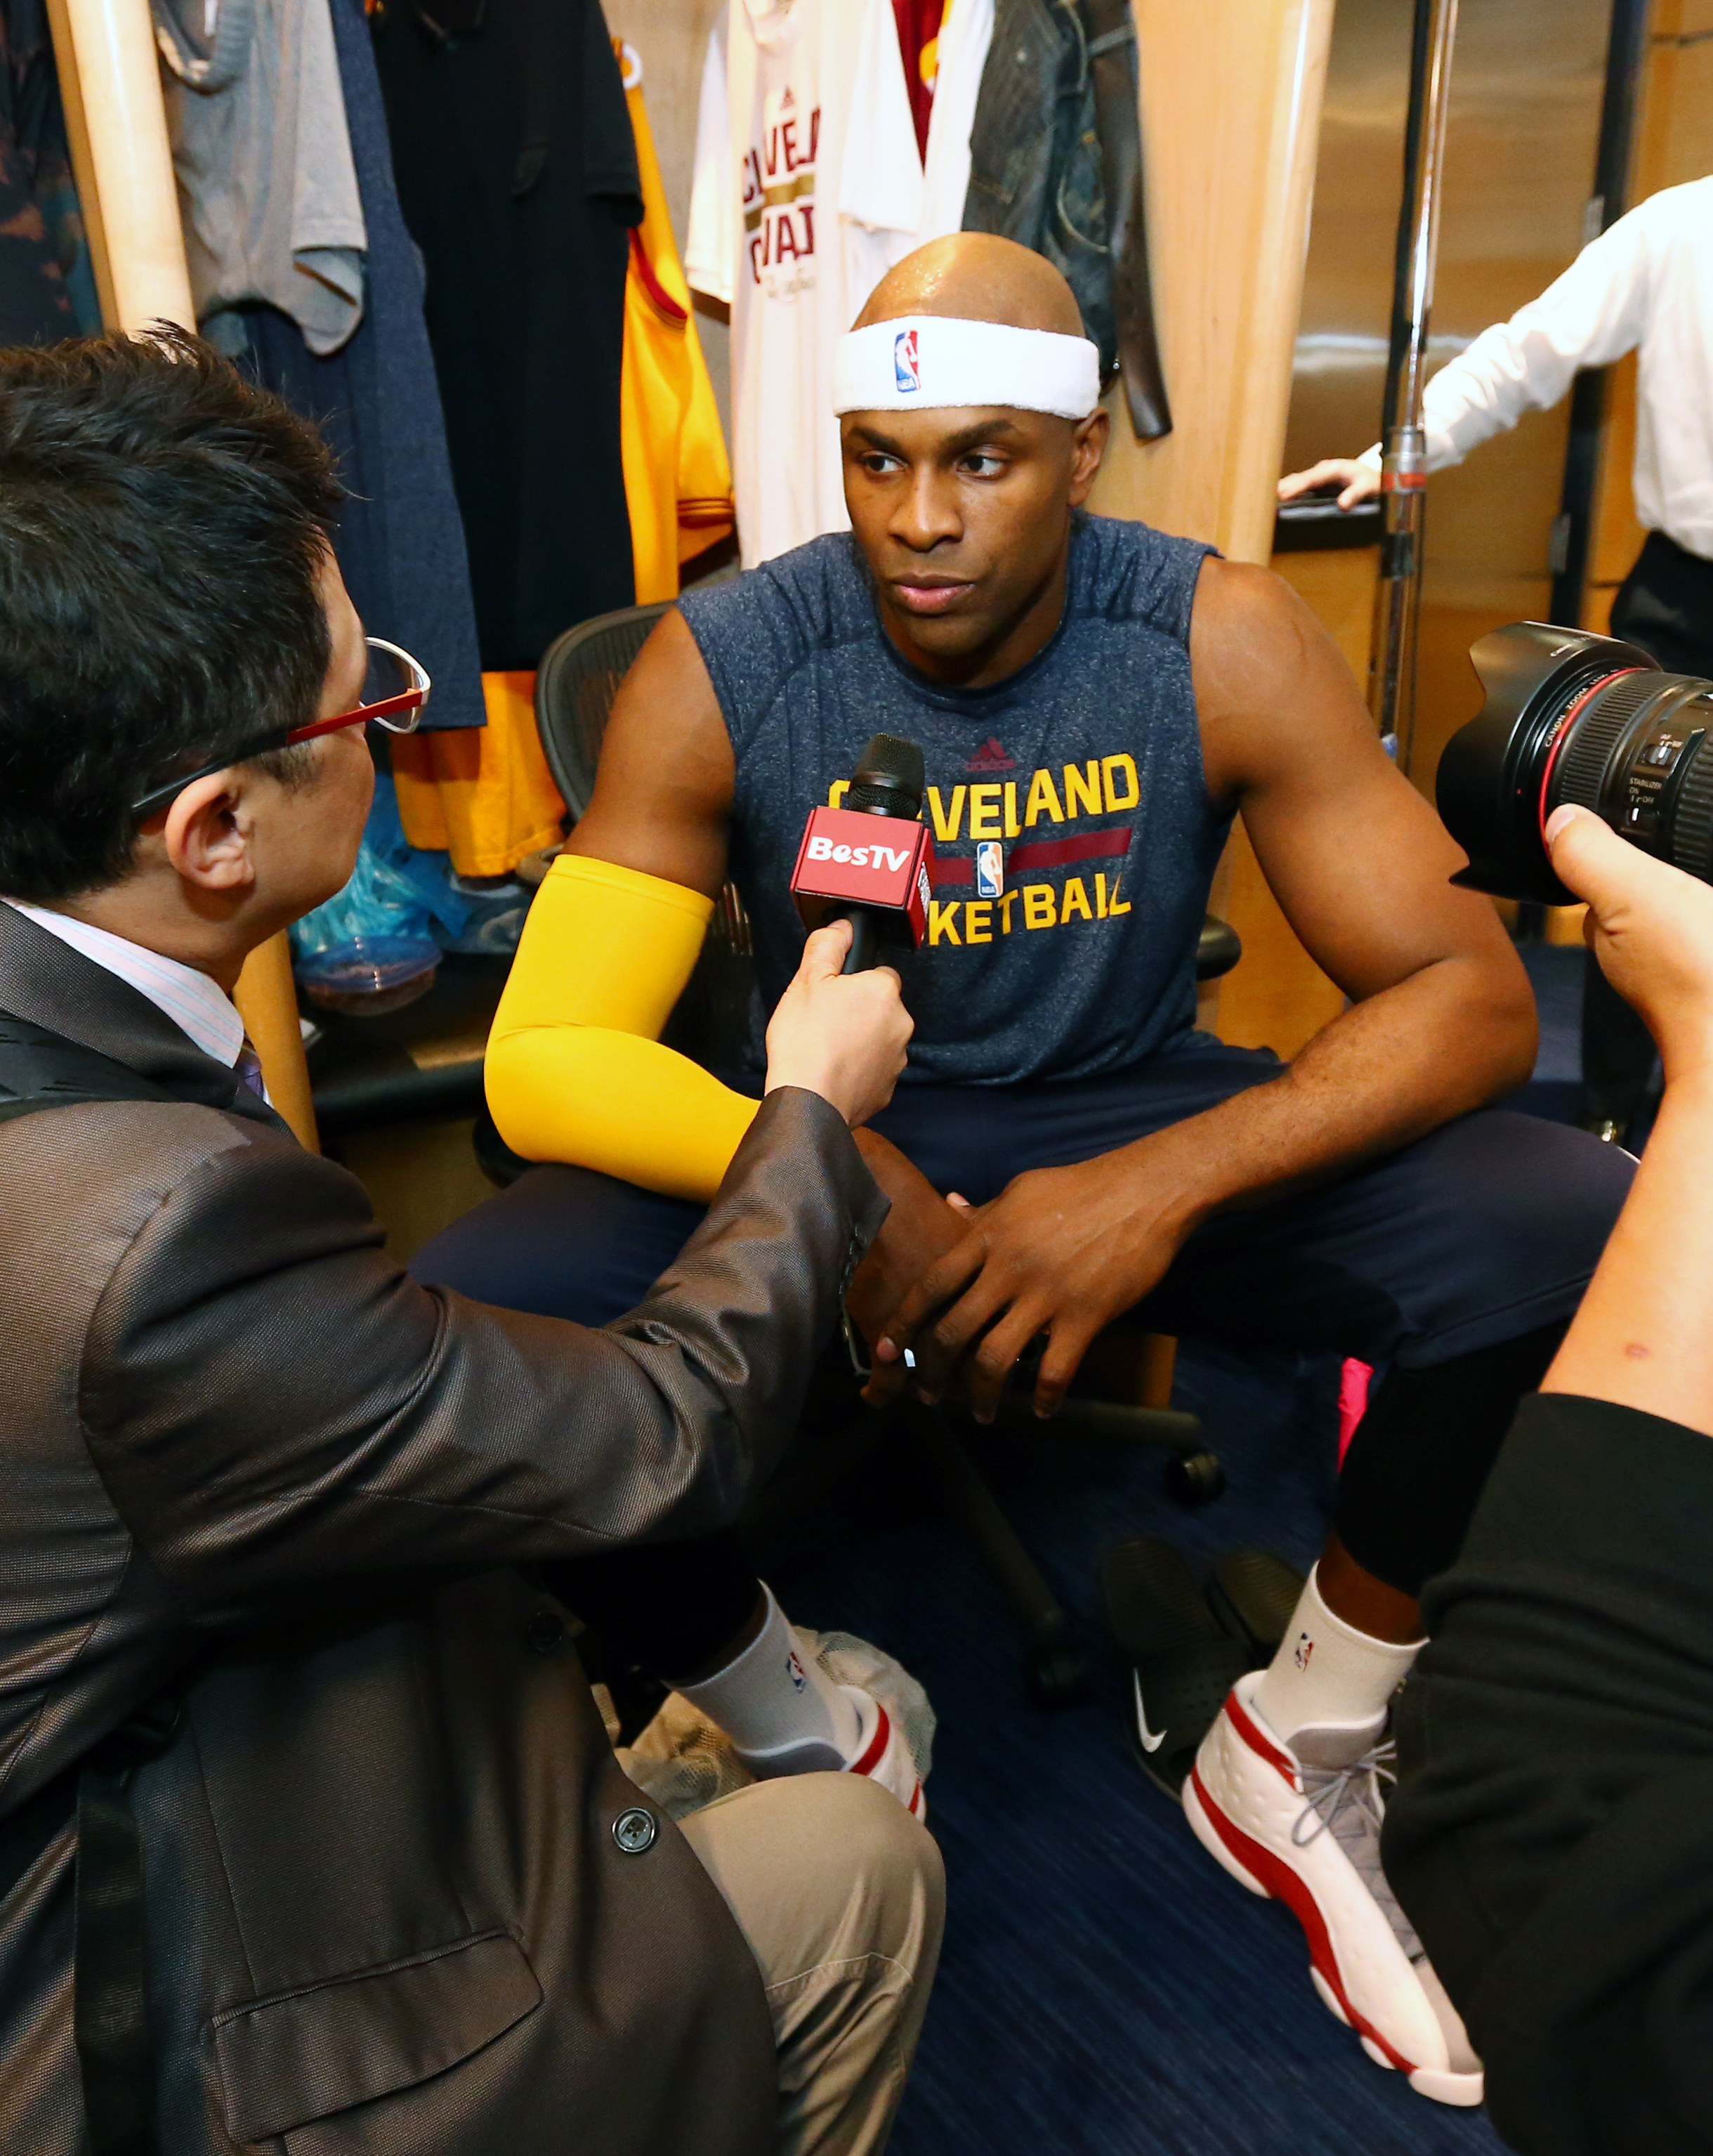 CLEVELAND, OH - JUNE 11:  Brendan Haywood #33 of the Cleveland Cavaliers addresses the media in the locker room prior to Game Four of the 2015 NBA Finals at The Quicken Loans Arena on June 11, 2015 in Cleveland, Ohio. (Photo by Nathaniel S. Butler/NBAE vi